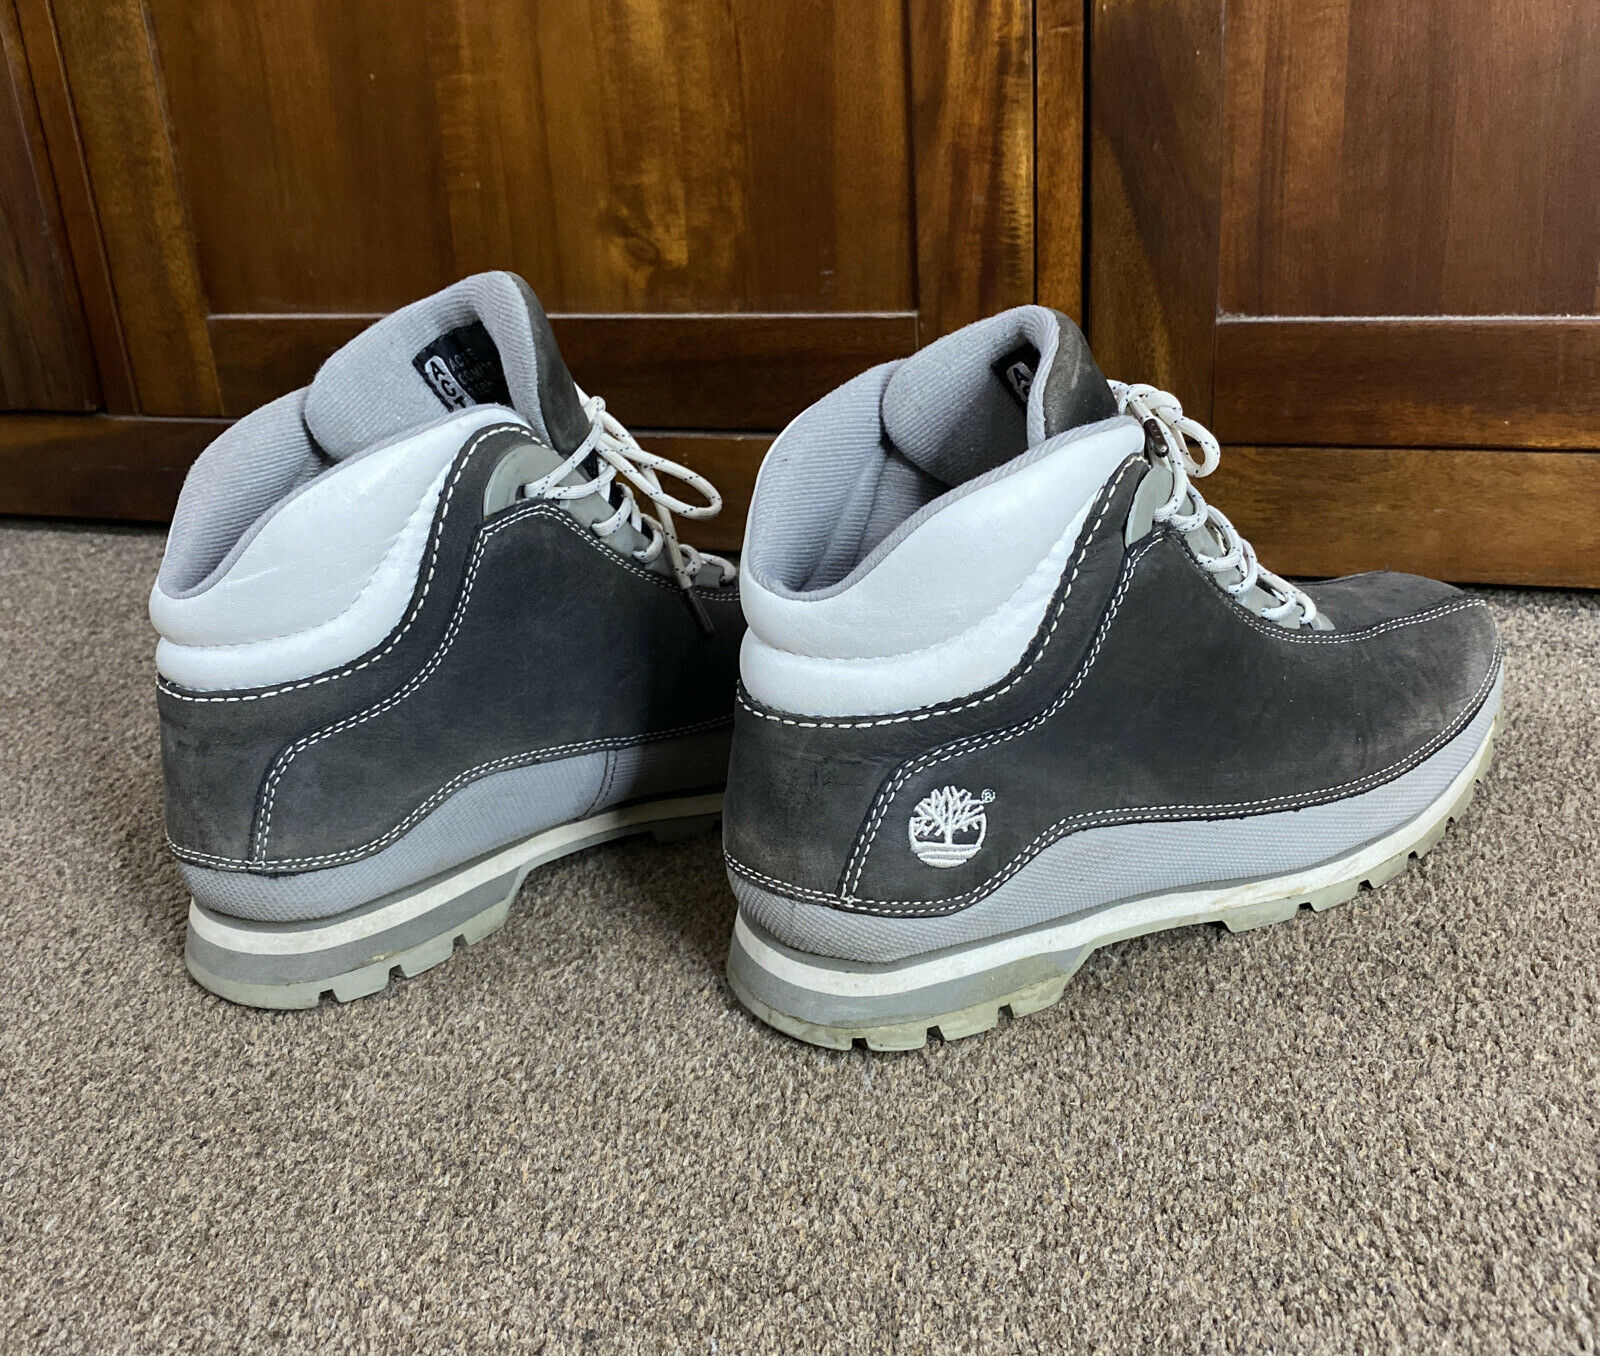 Timberland ACT Grey Suede Lace Up Walking/Hiking Boots 8M